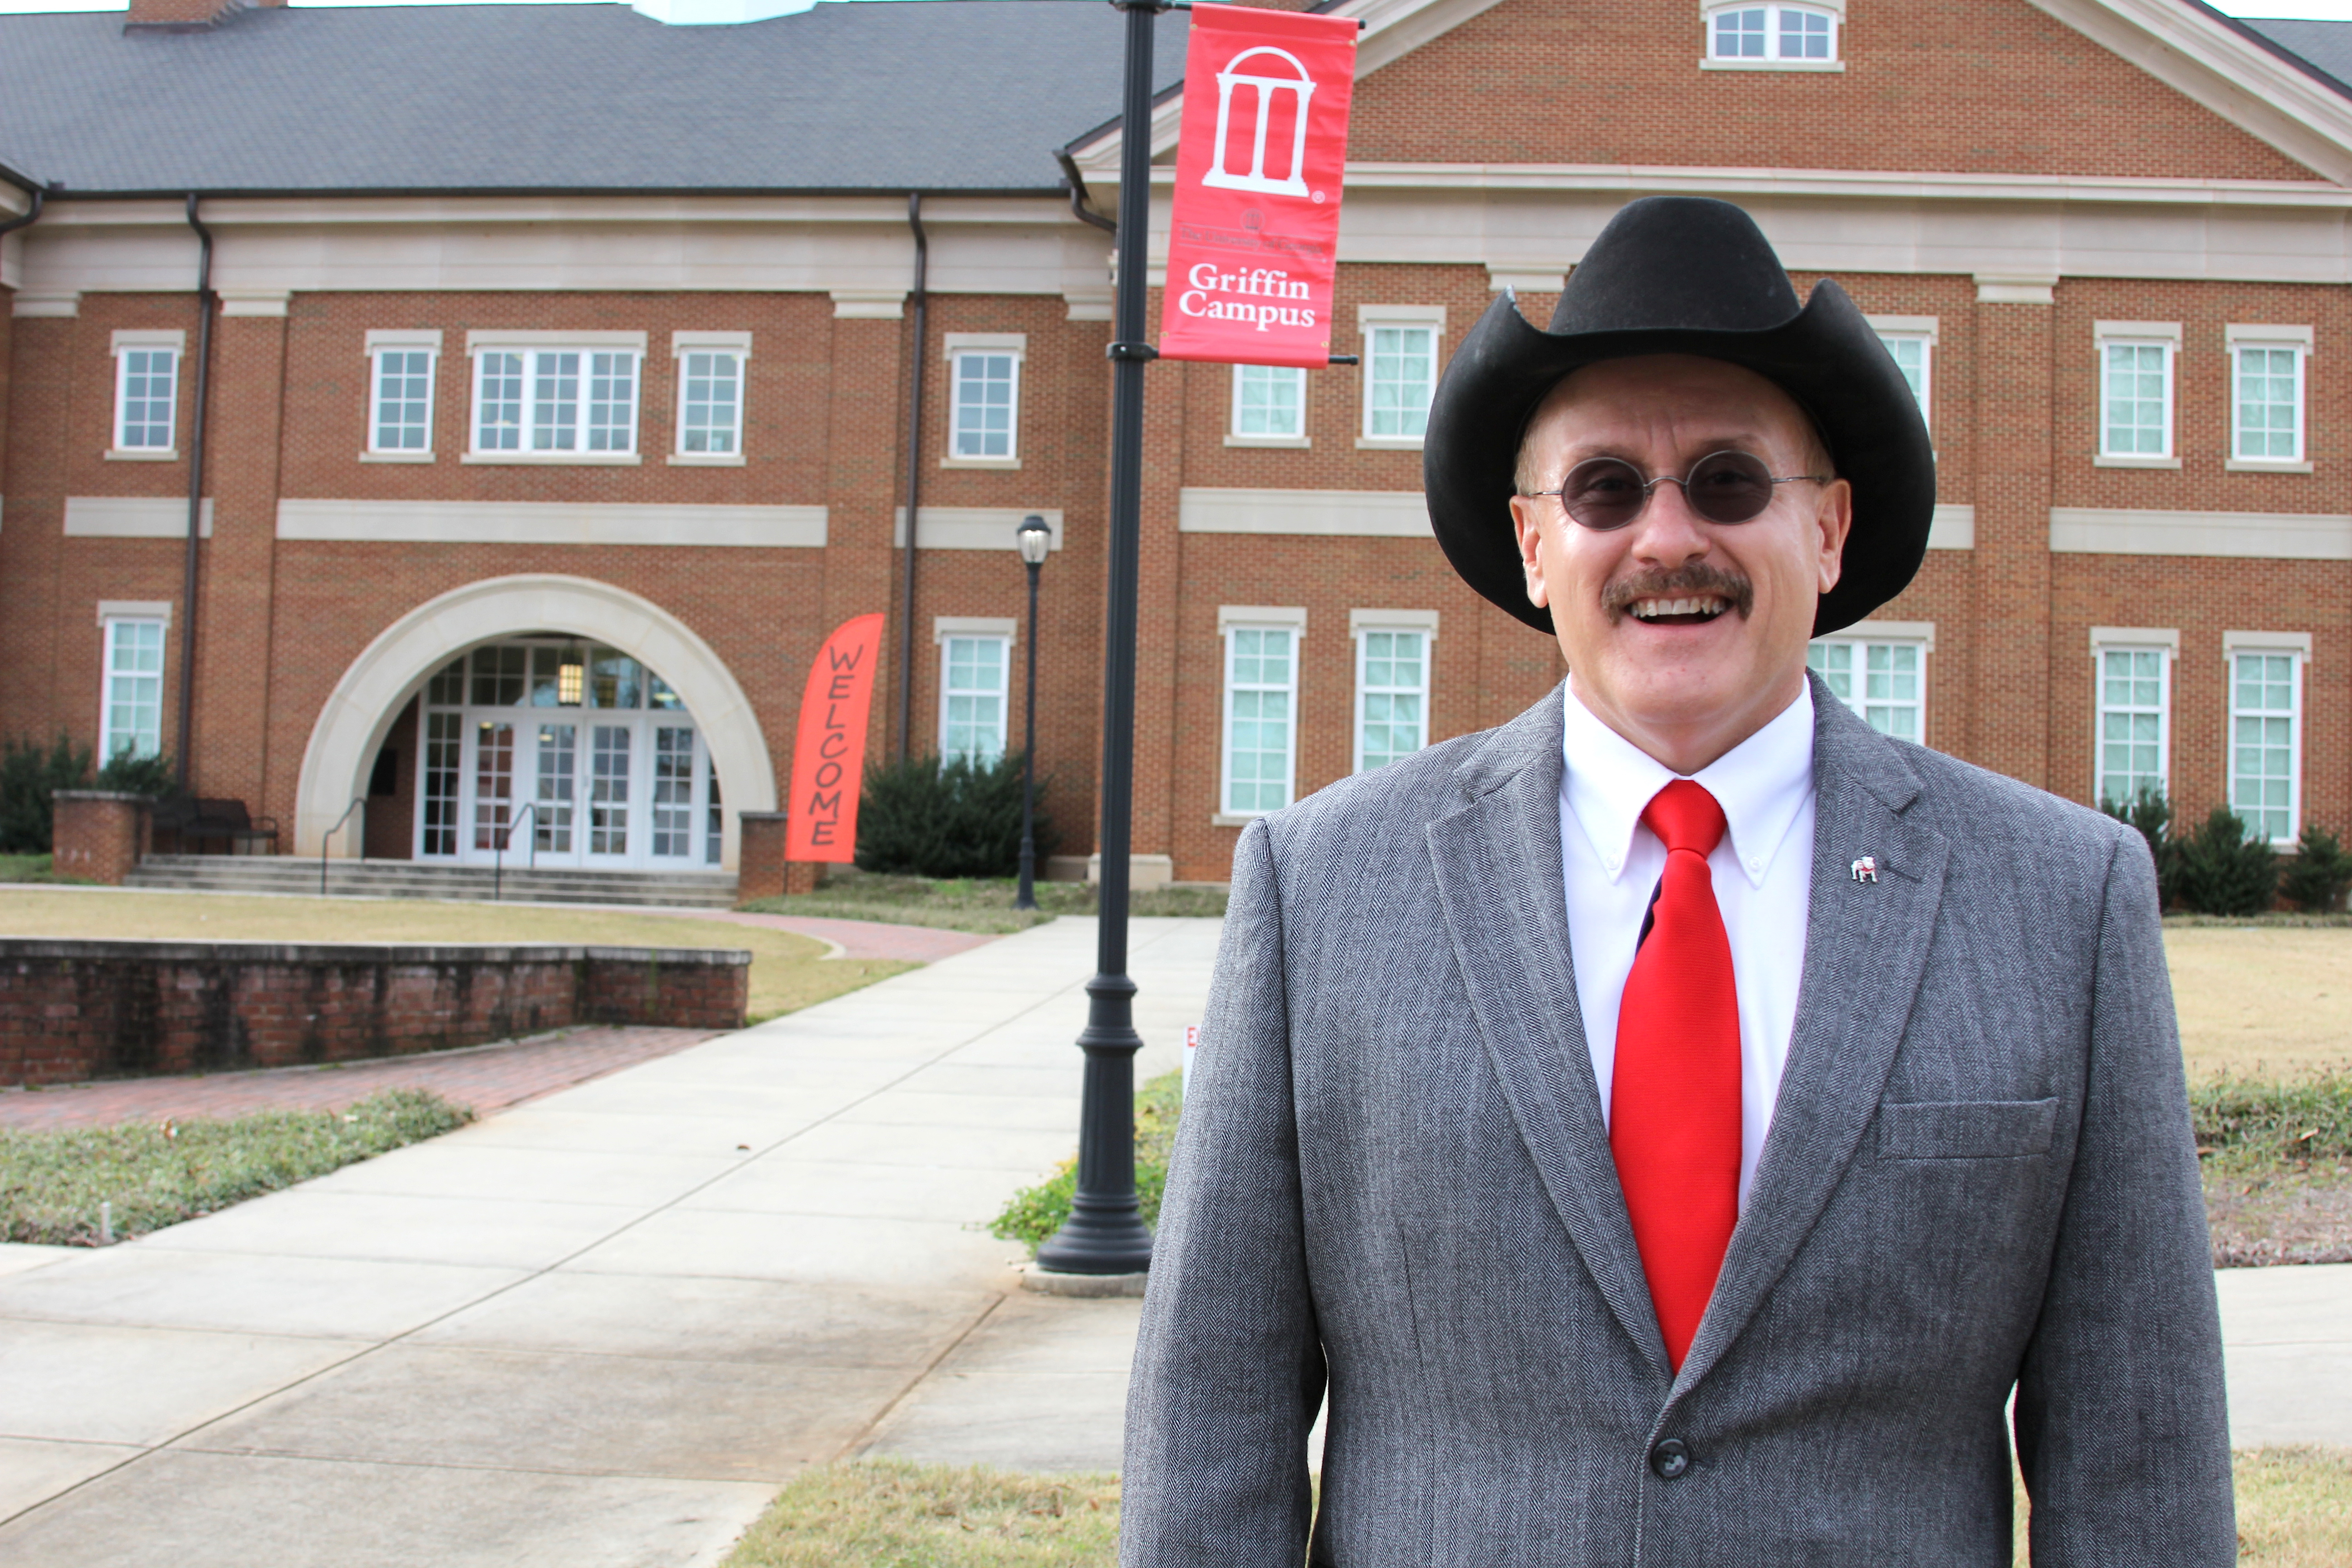 Lew Hunnicutt, assistant provost and campus director at the University of Georgia Griffin Campus.